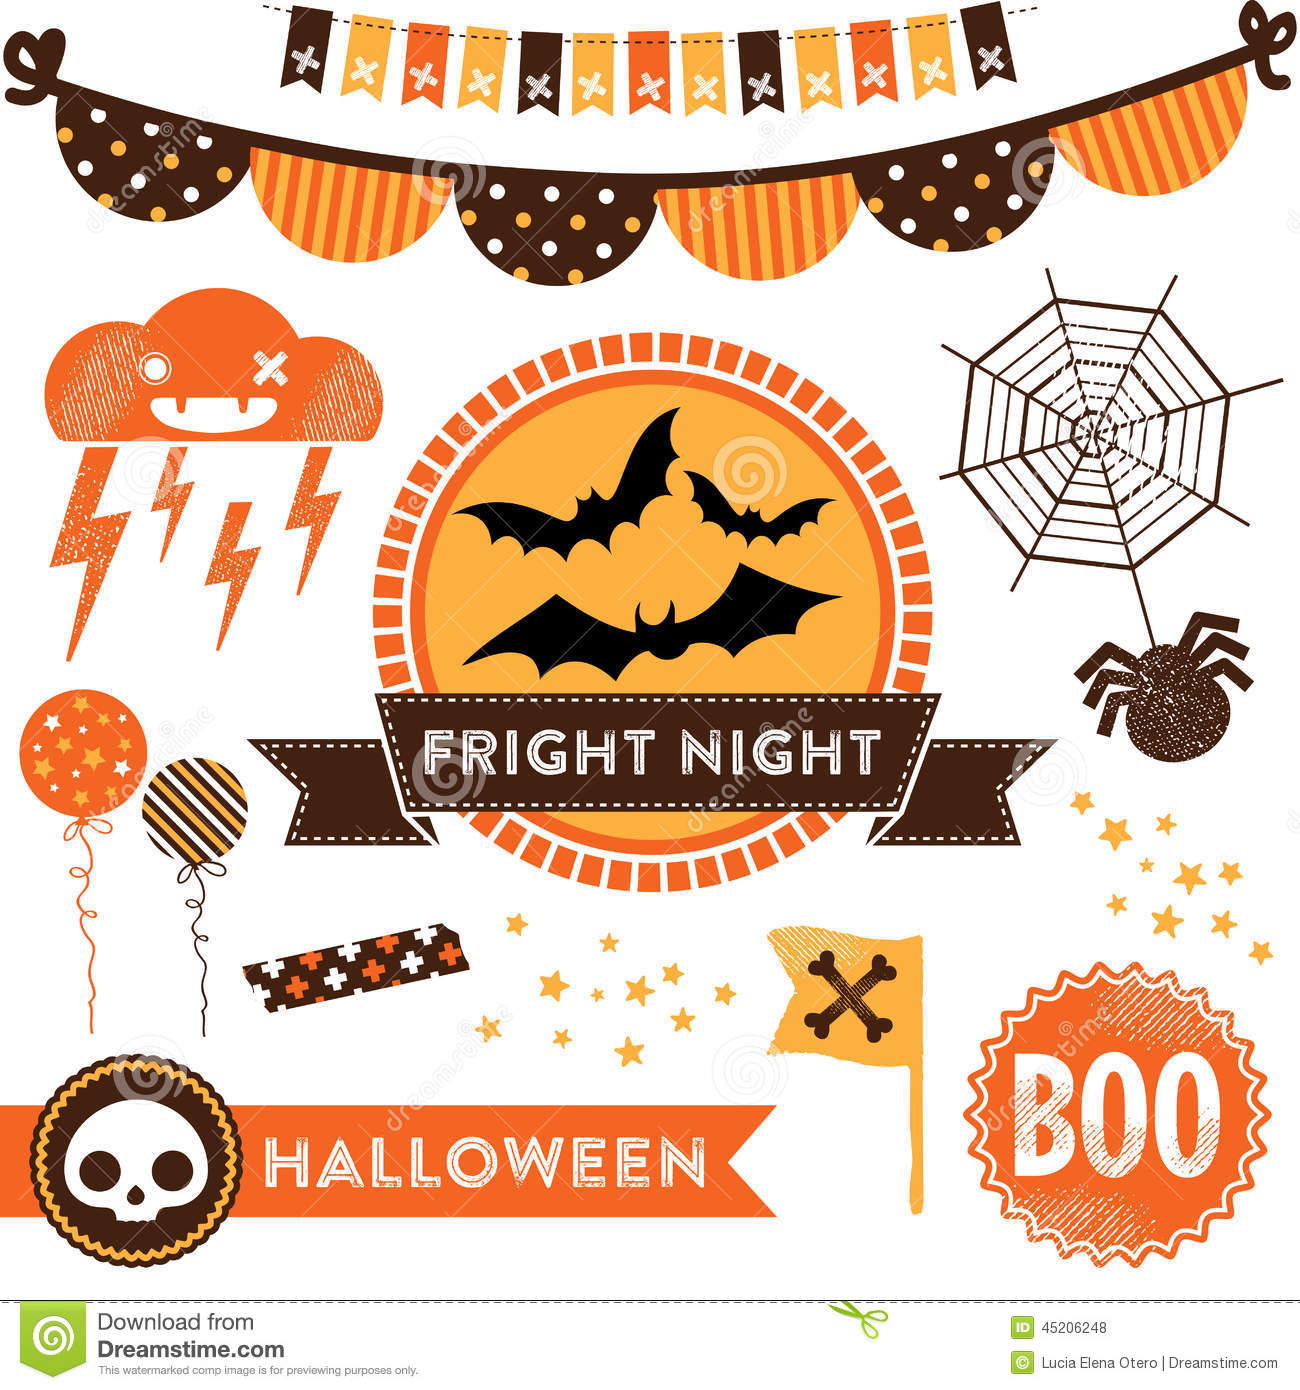 Halloween decoration clipart - Halloween Clipart Royalty Free Stock Photos